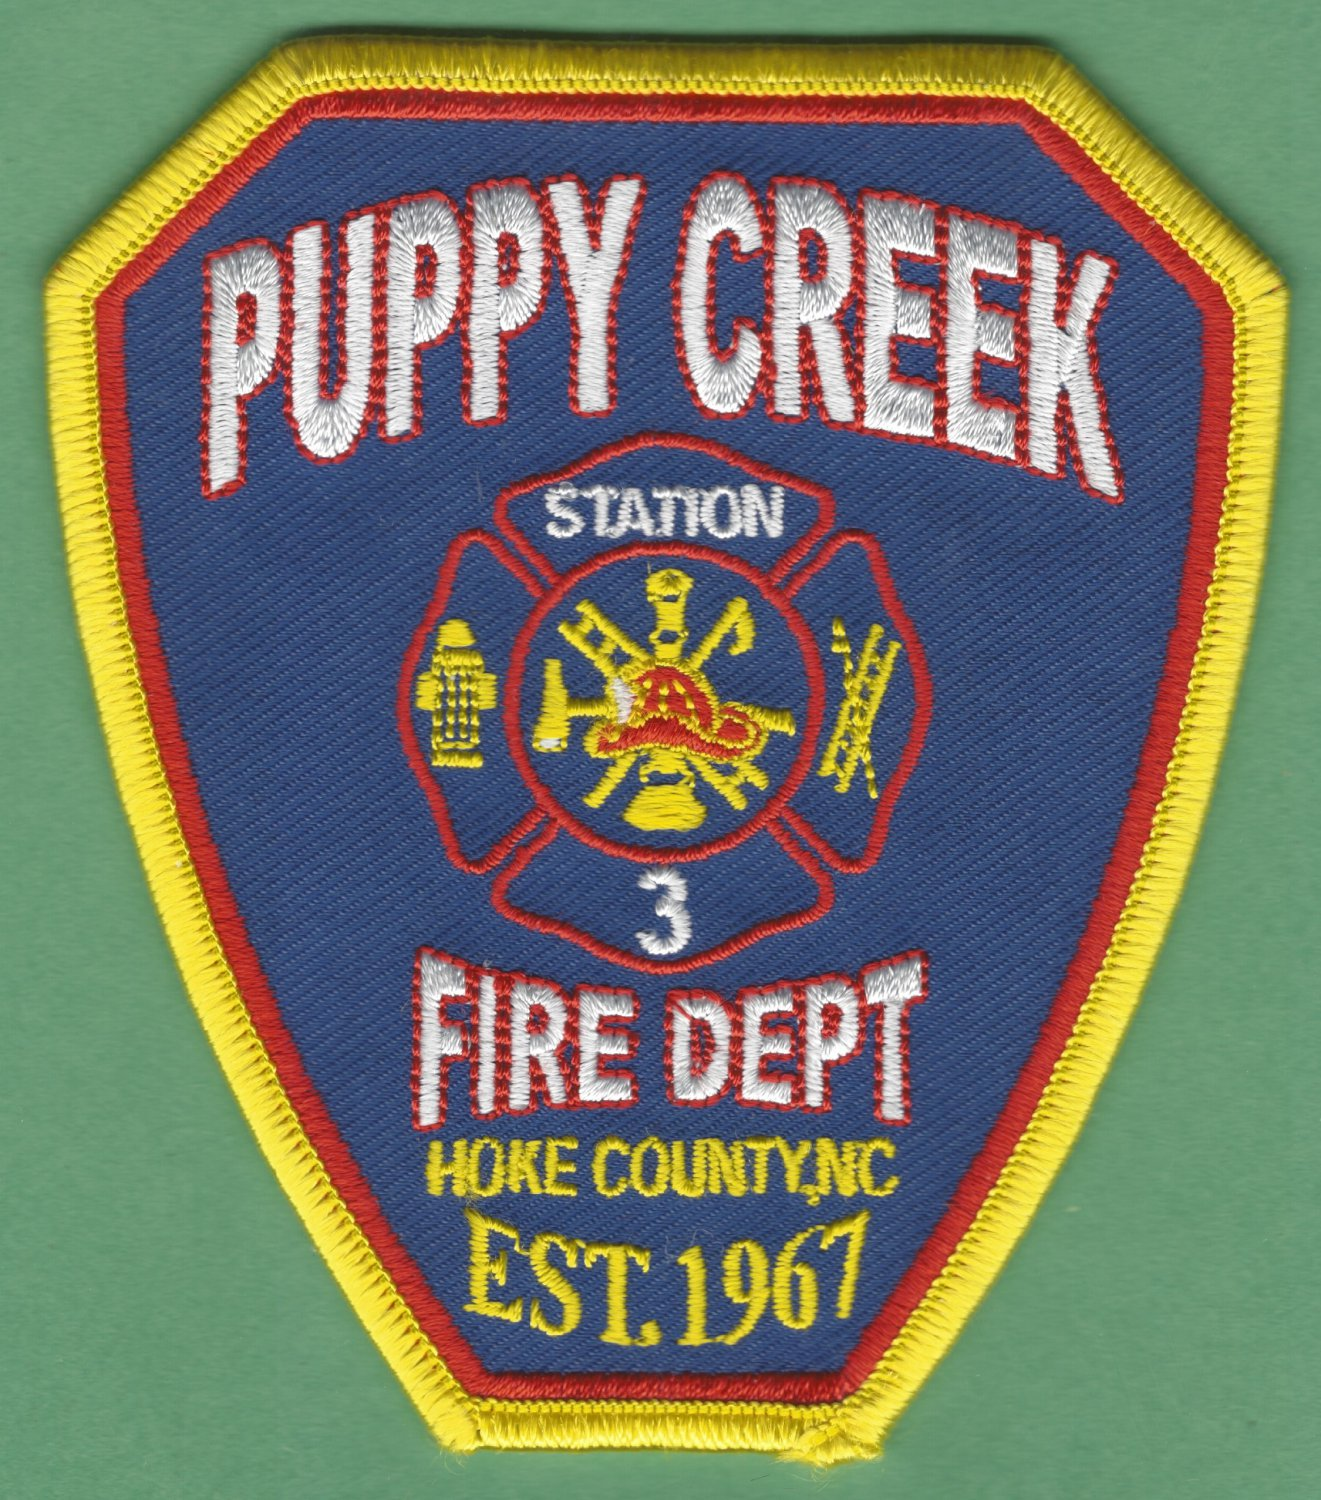 PUPPY CREEK NORTH CAROLINA FIRE RESCUE PATCH